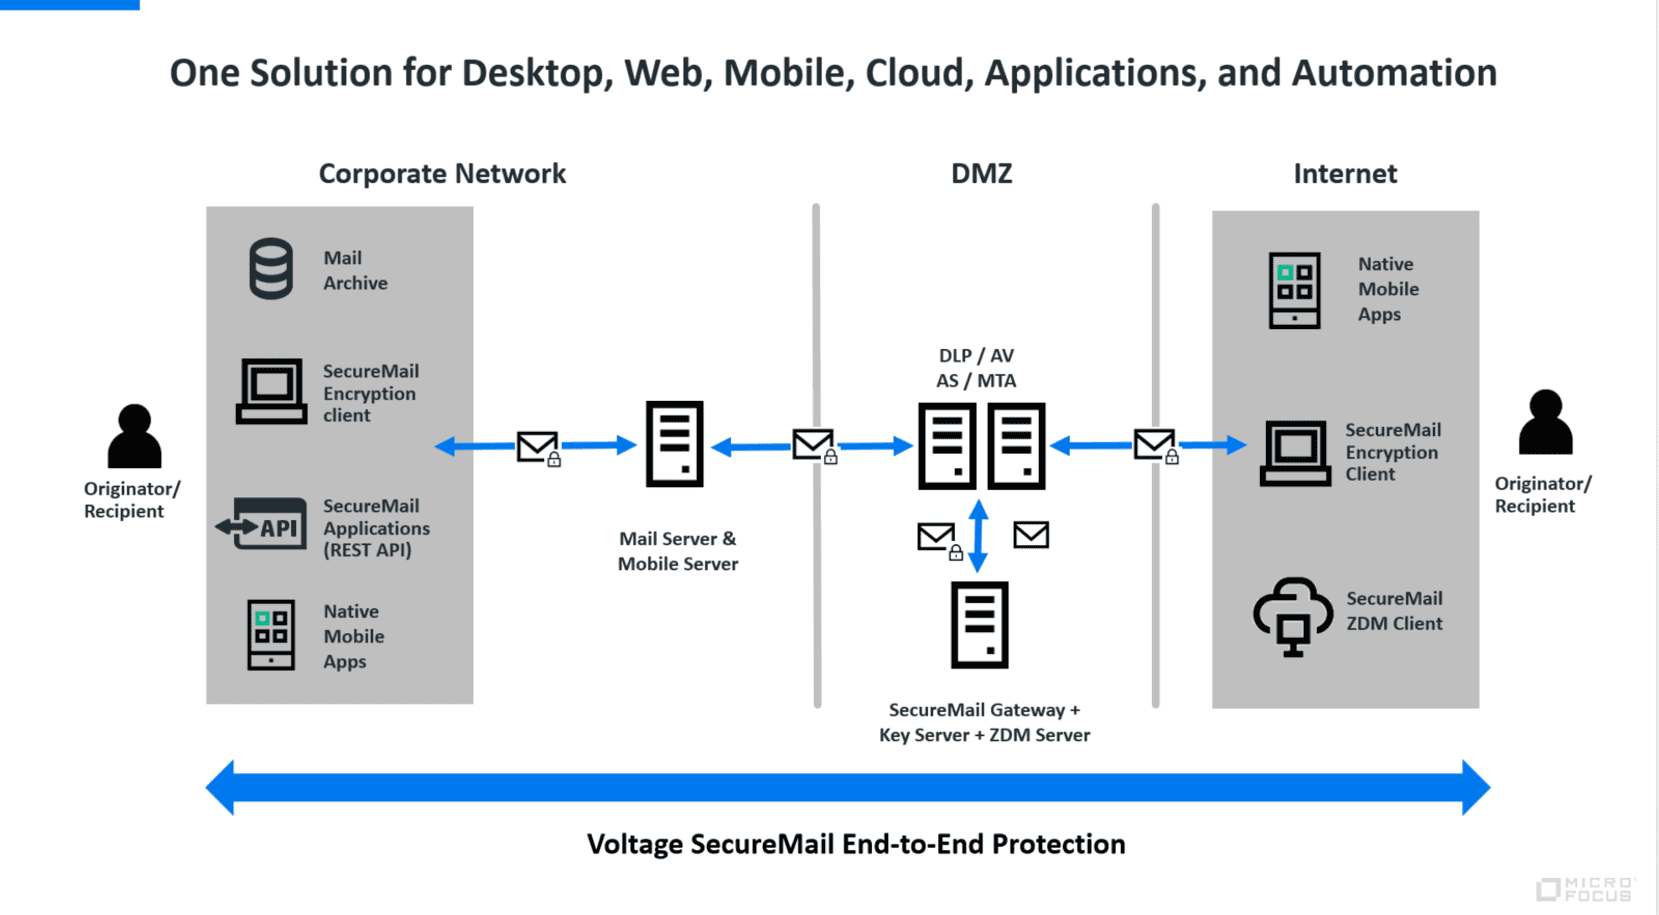 Voltage SecureMail architecture